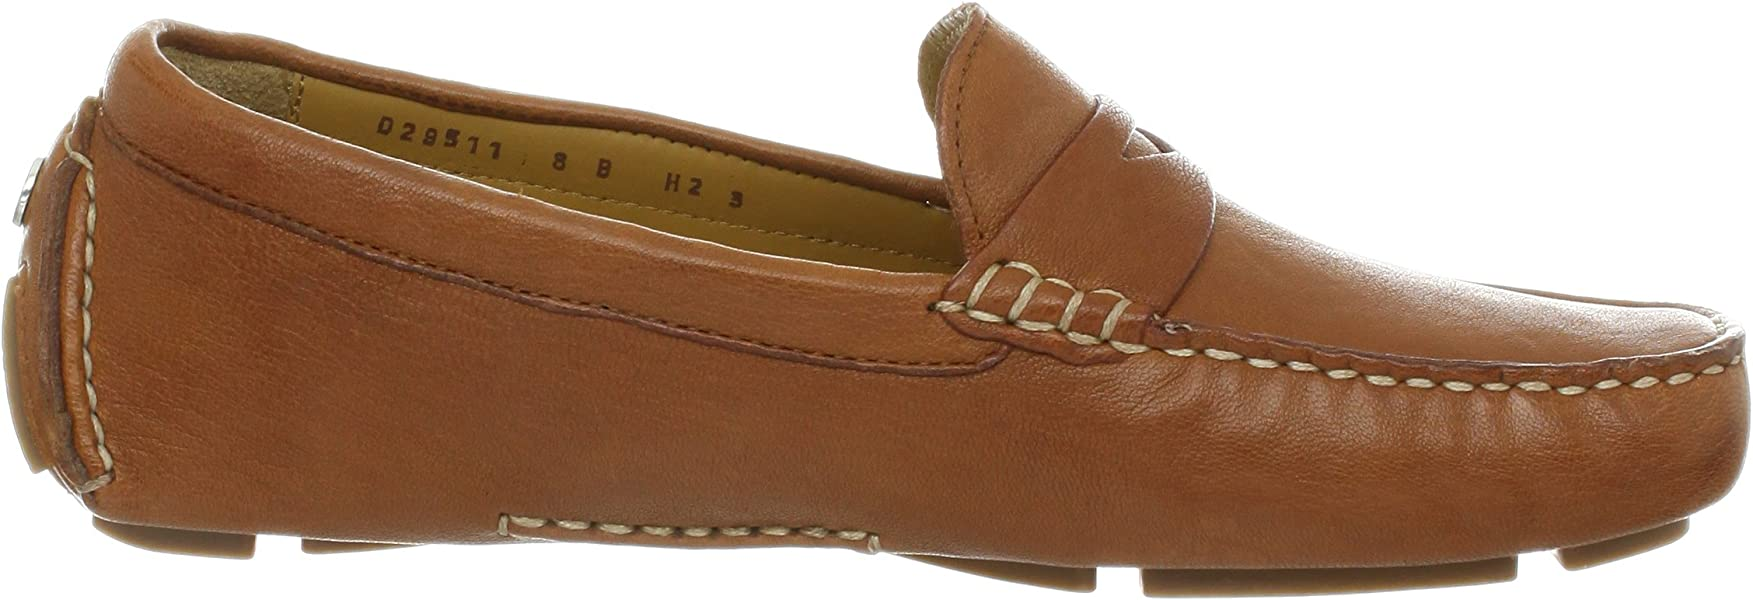 Cole Haan Womens Trillby Driver Penny Loafer Luggage D Island Shoes Slip On Mocasine Casual Brown Double Tap To Zoom